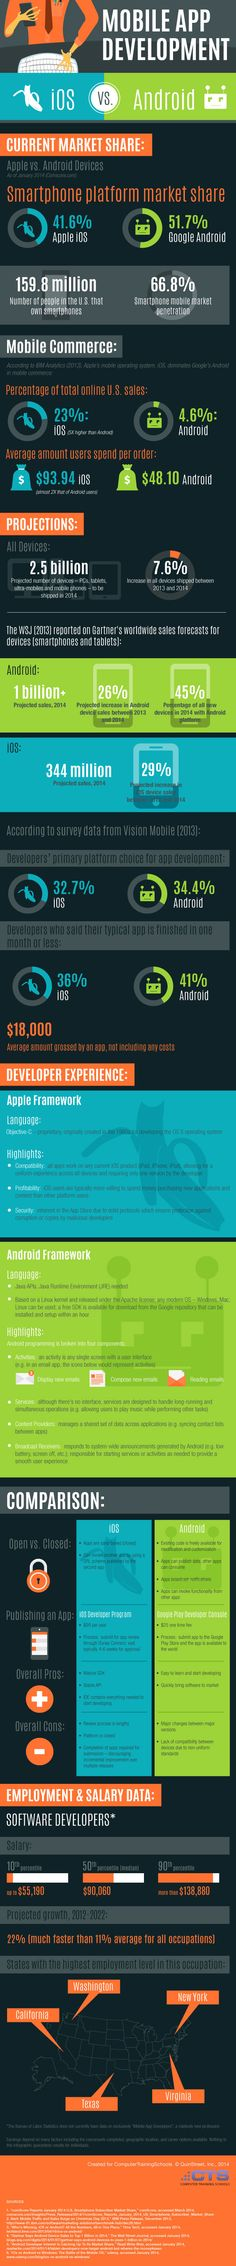 The Big Question in Mobile App Development : iOS or Android?